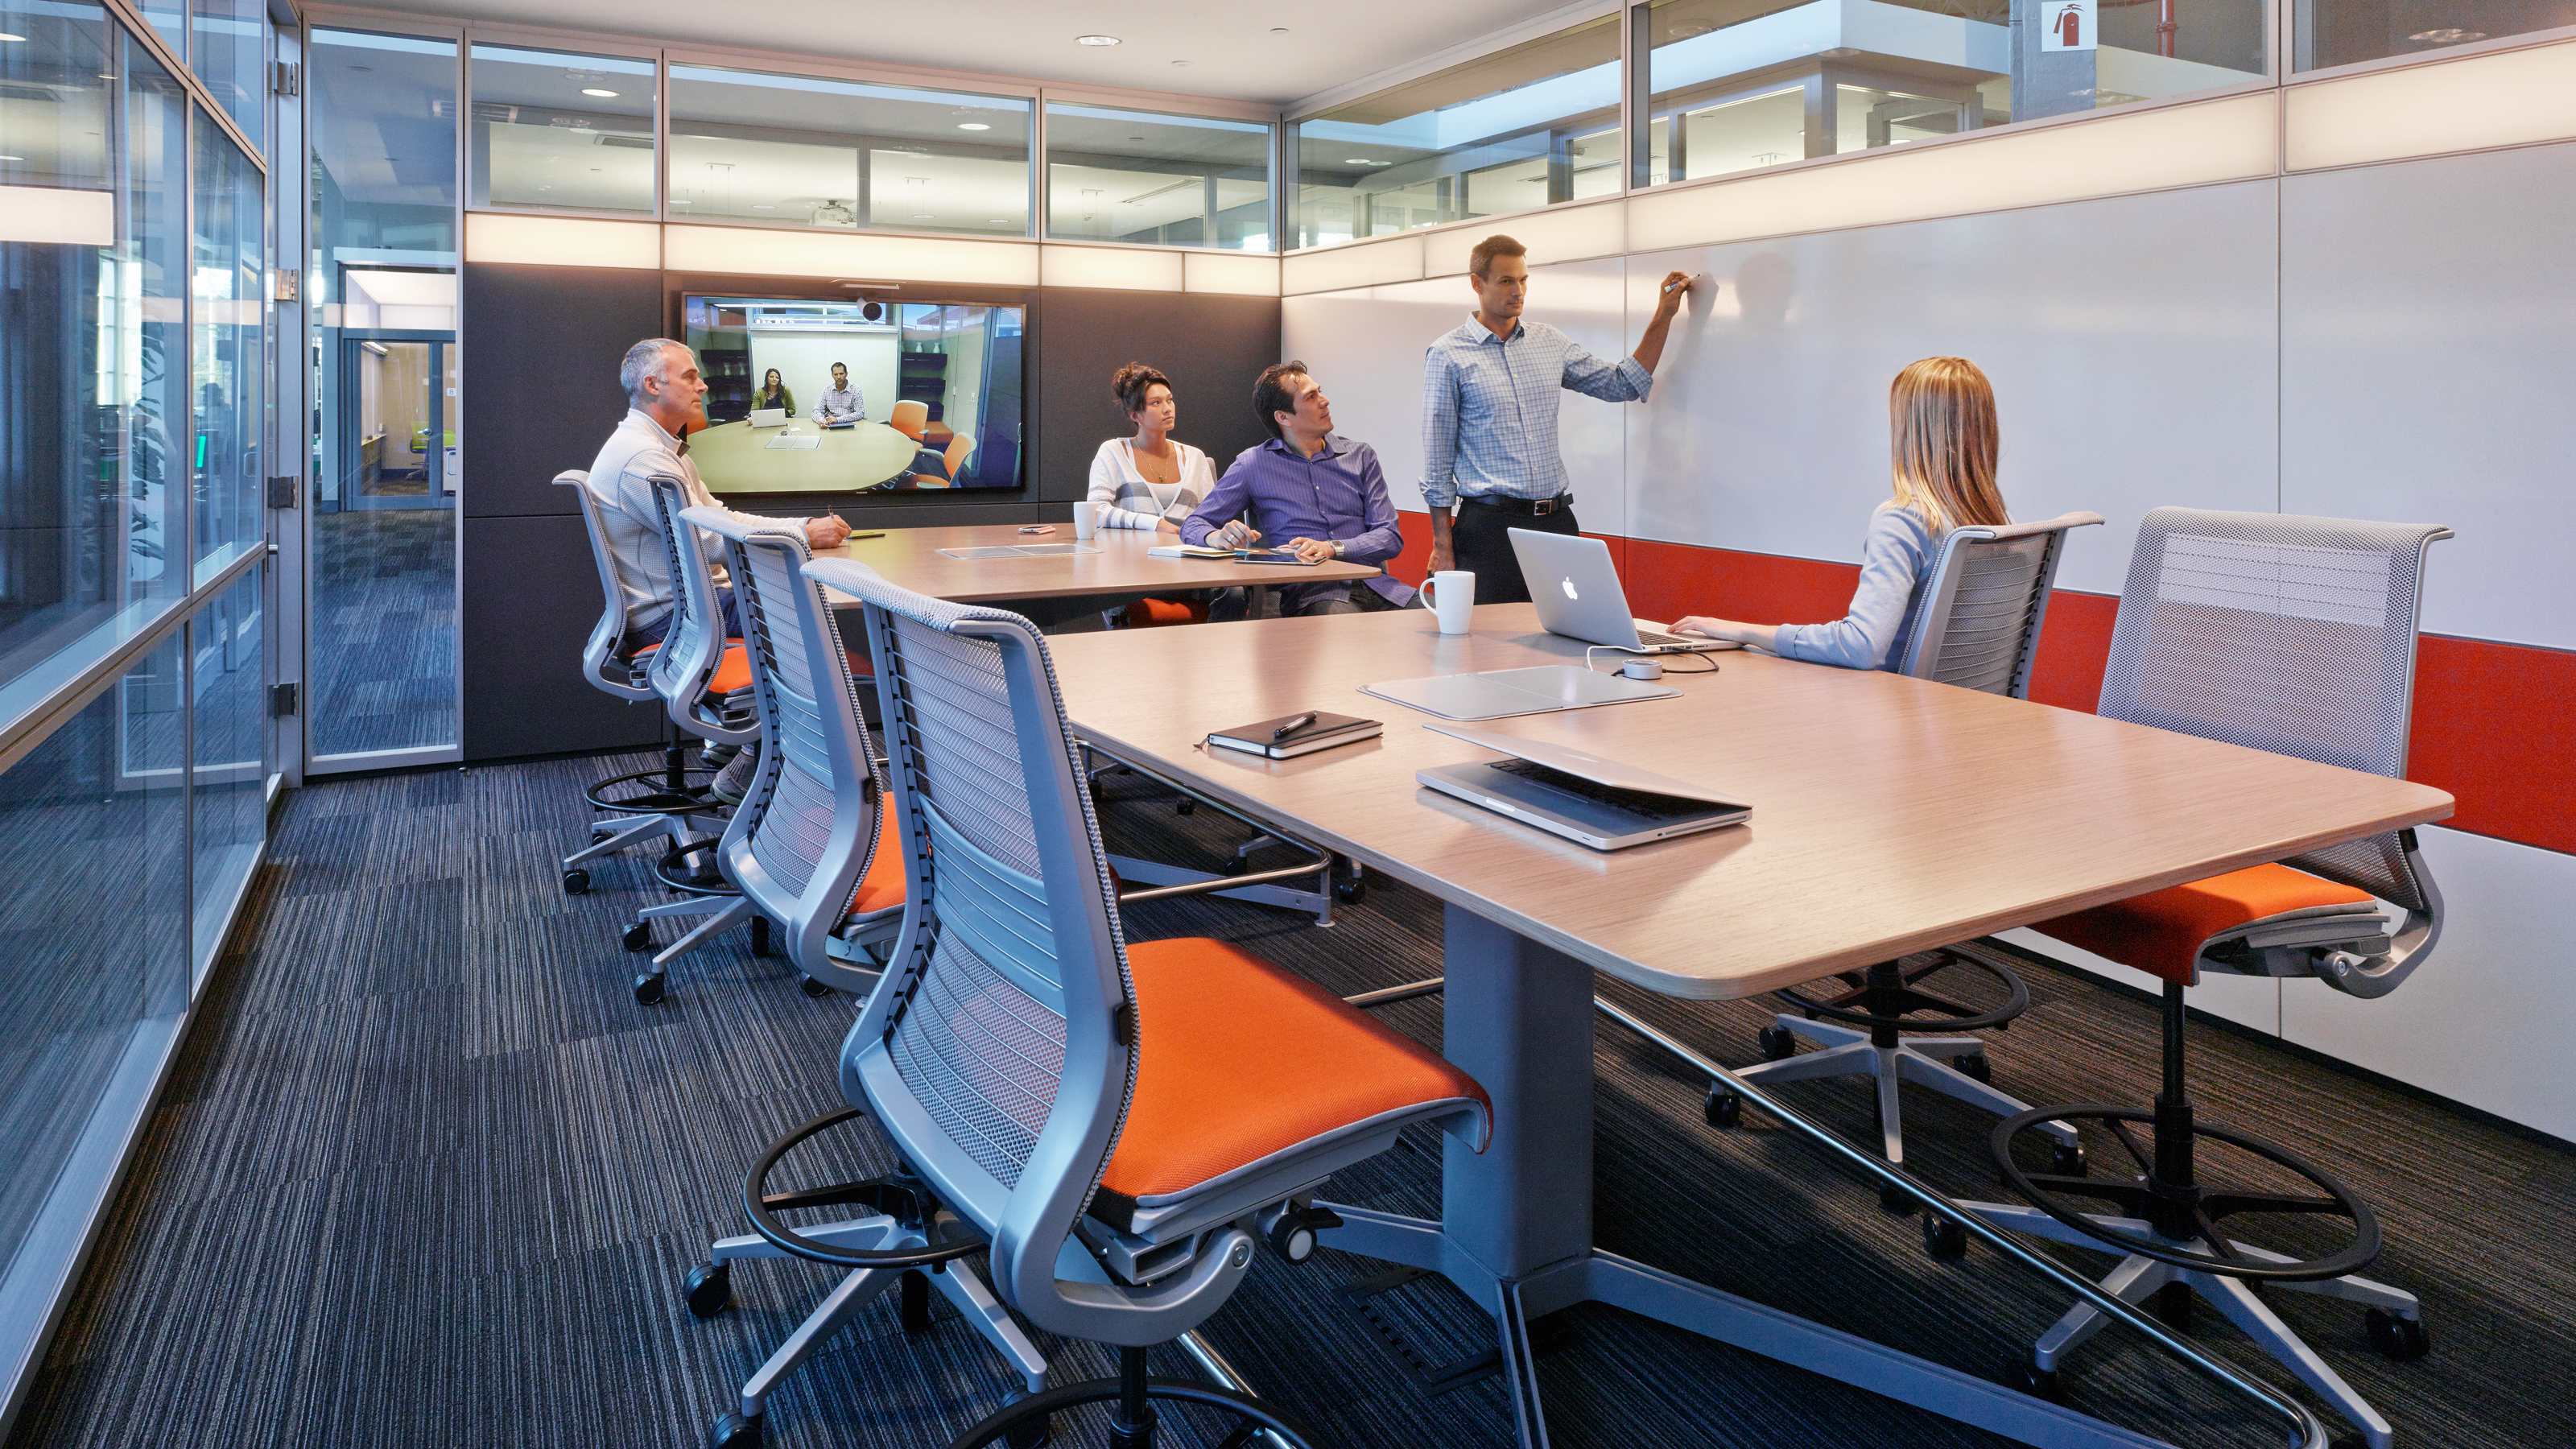 media scape team studio steelcase steelcase office furniture assembly instructions steelcase modular office furniture